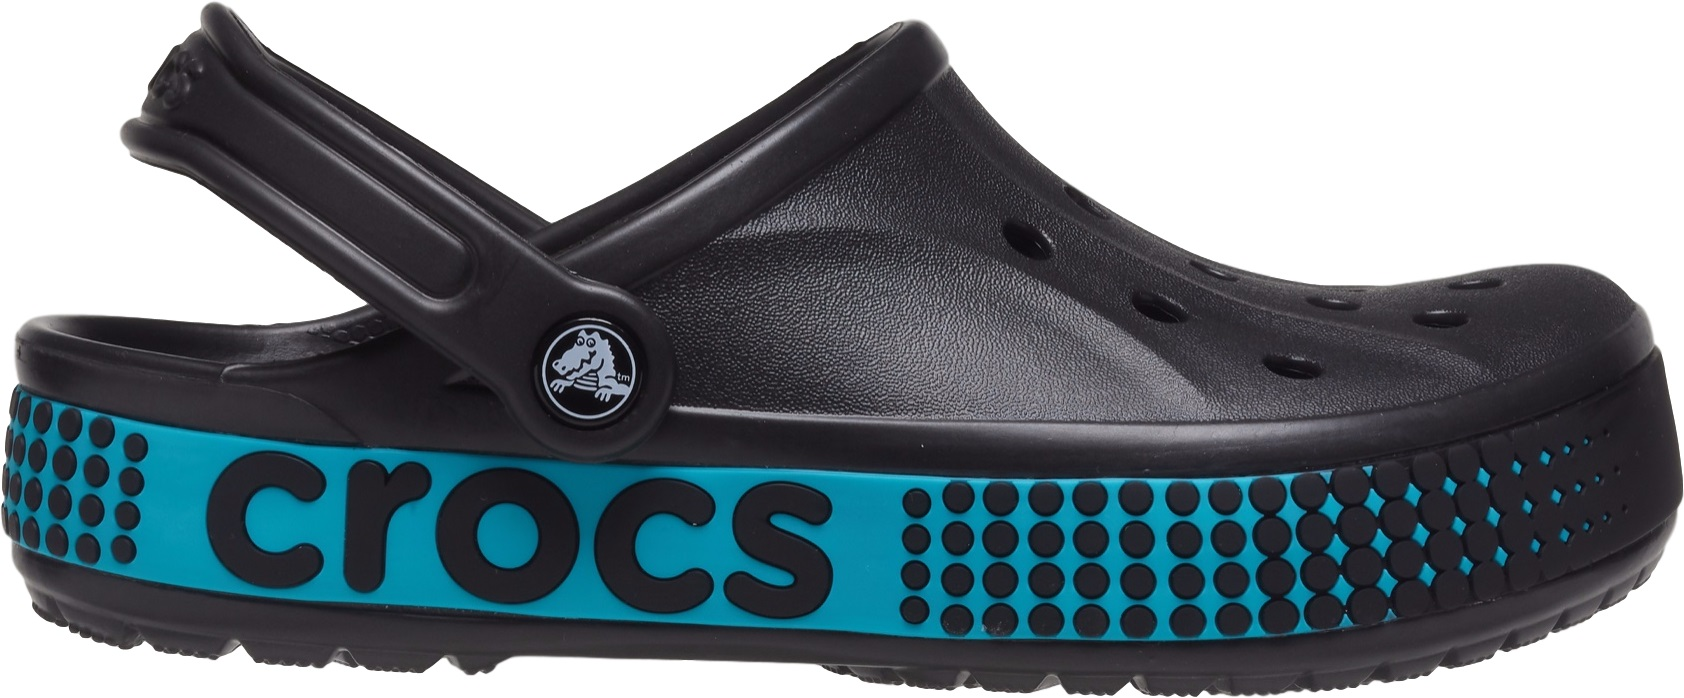 Crocs™ Bayaband Logo Motion Clog Black 43,5